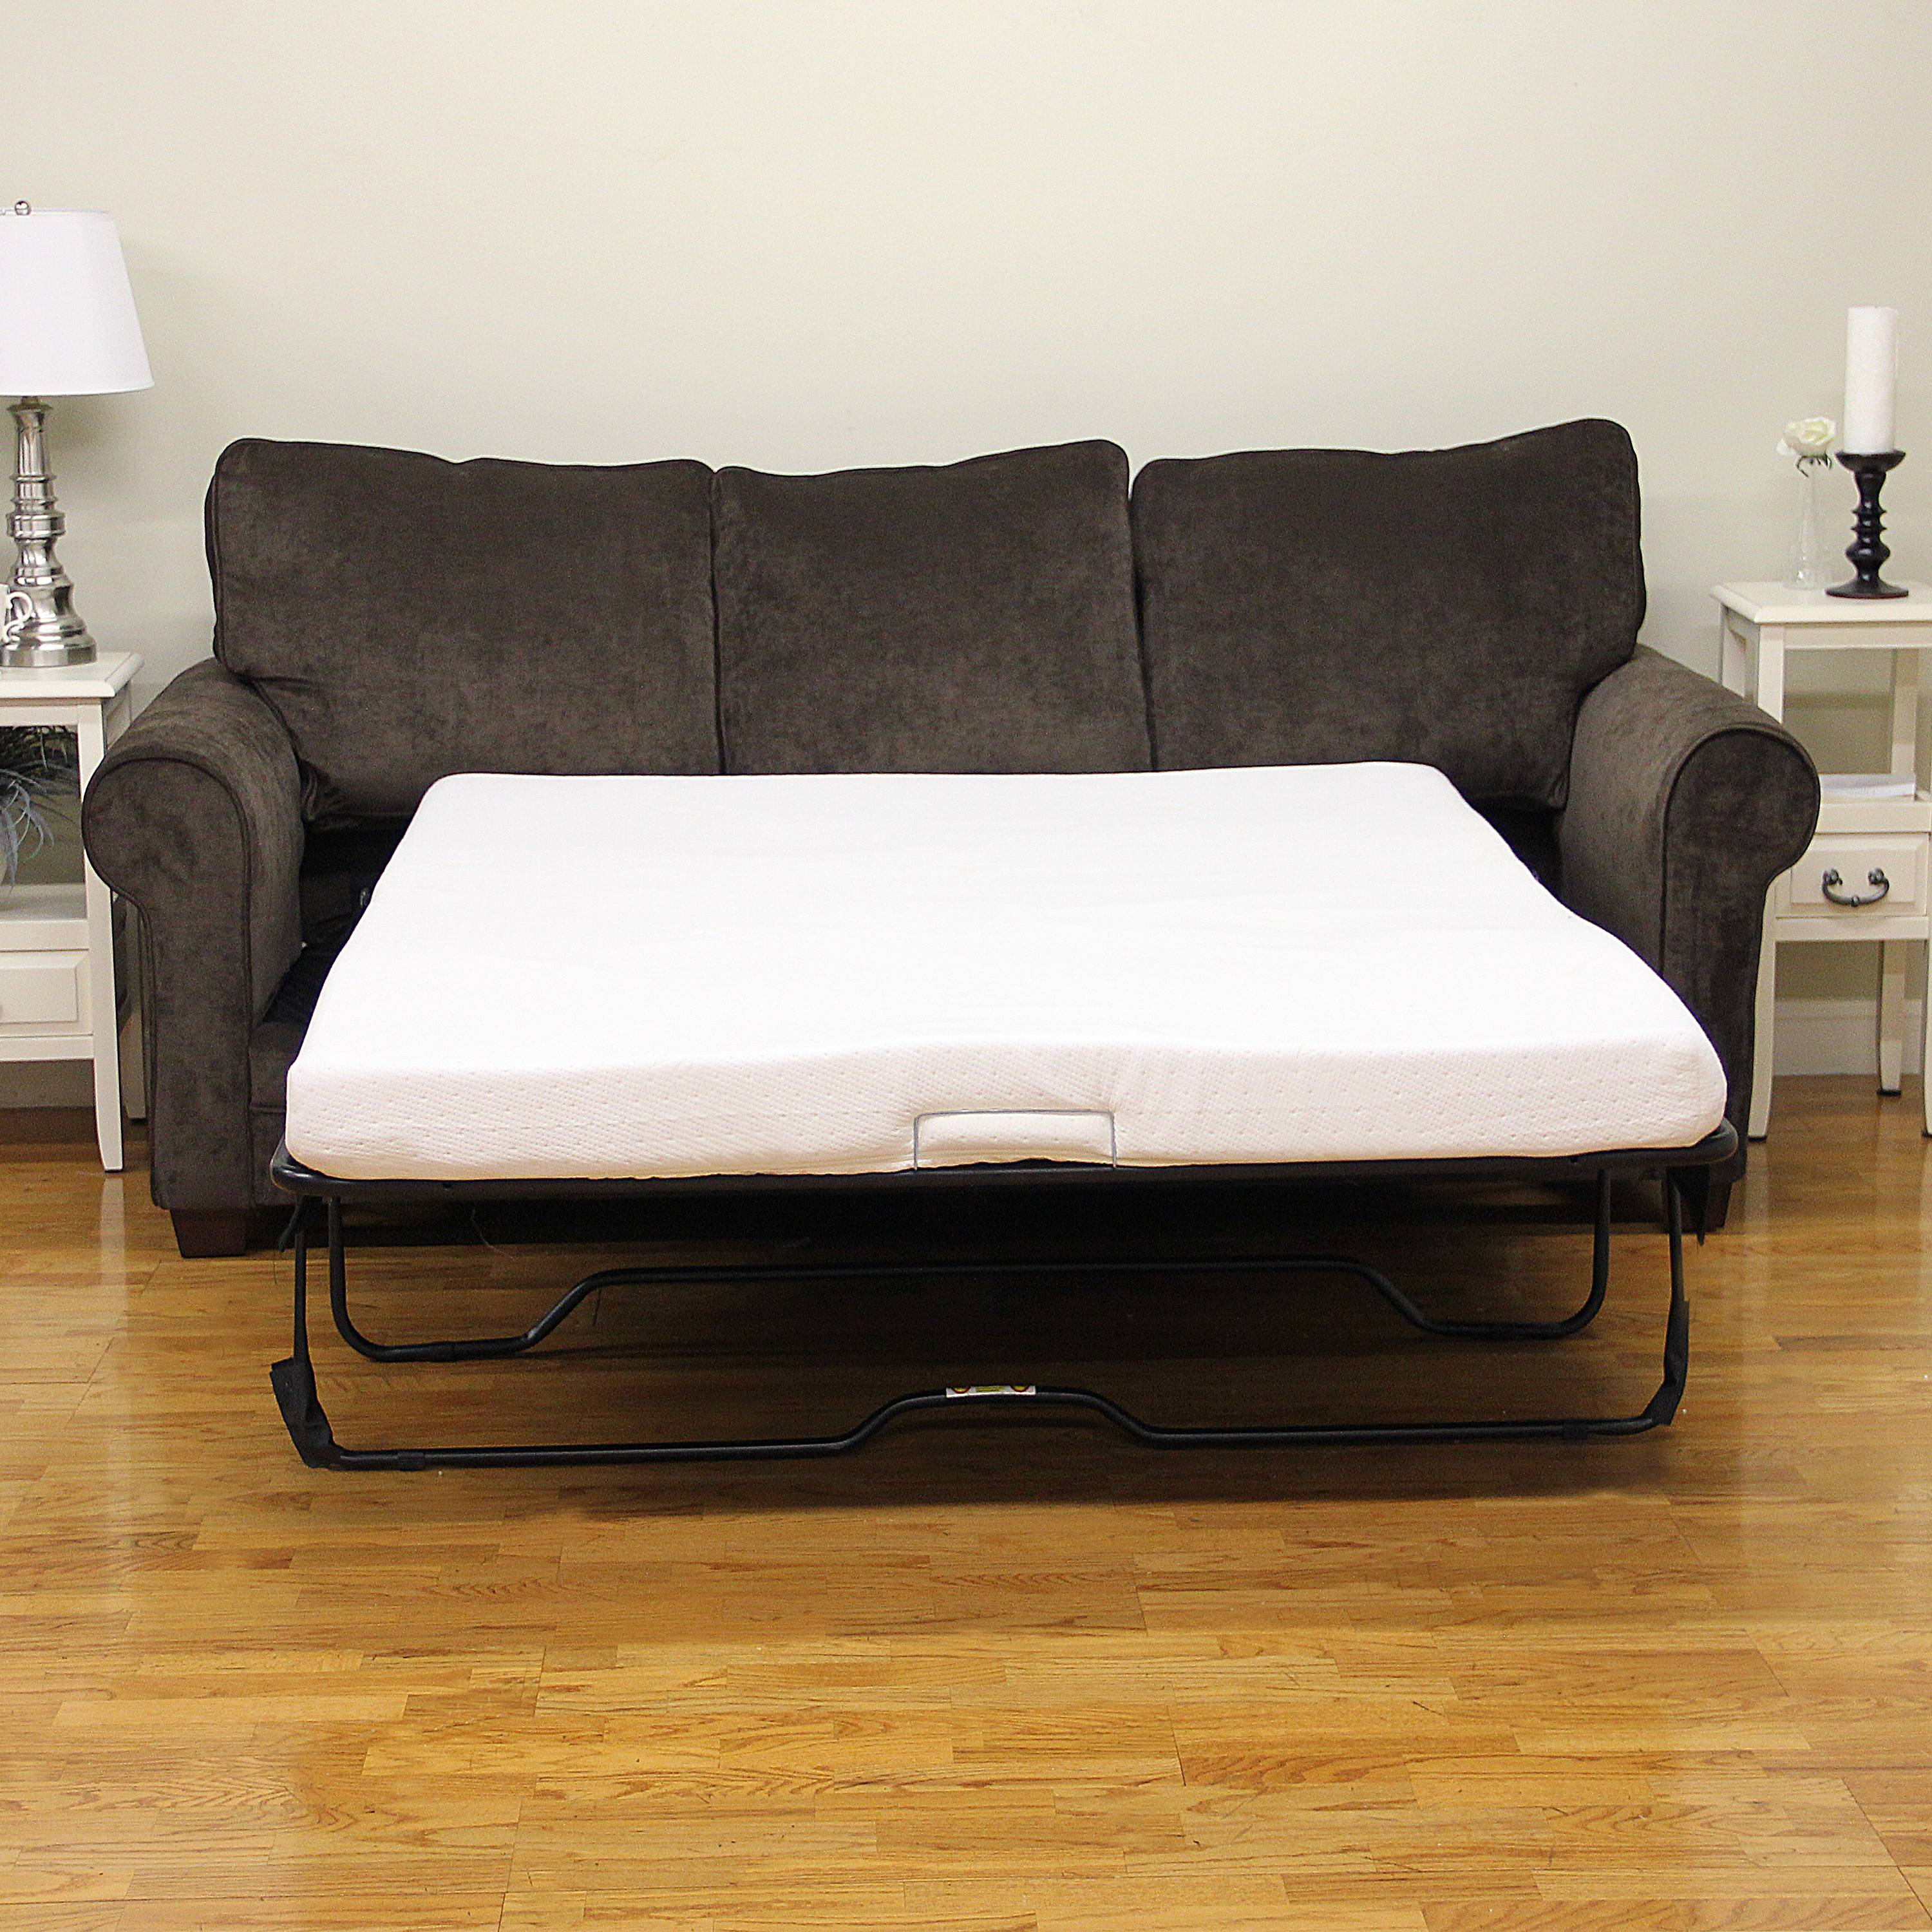 Modern Sleep Memory Foam Replacement Sofa Bed 4 5 Inch Mattress